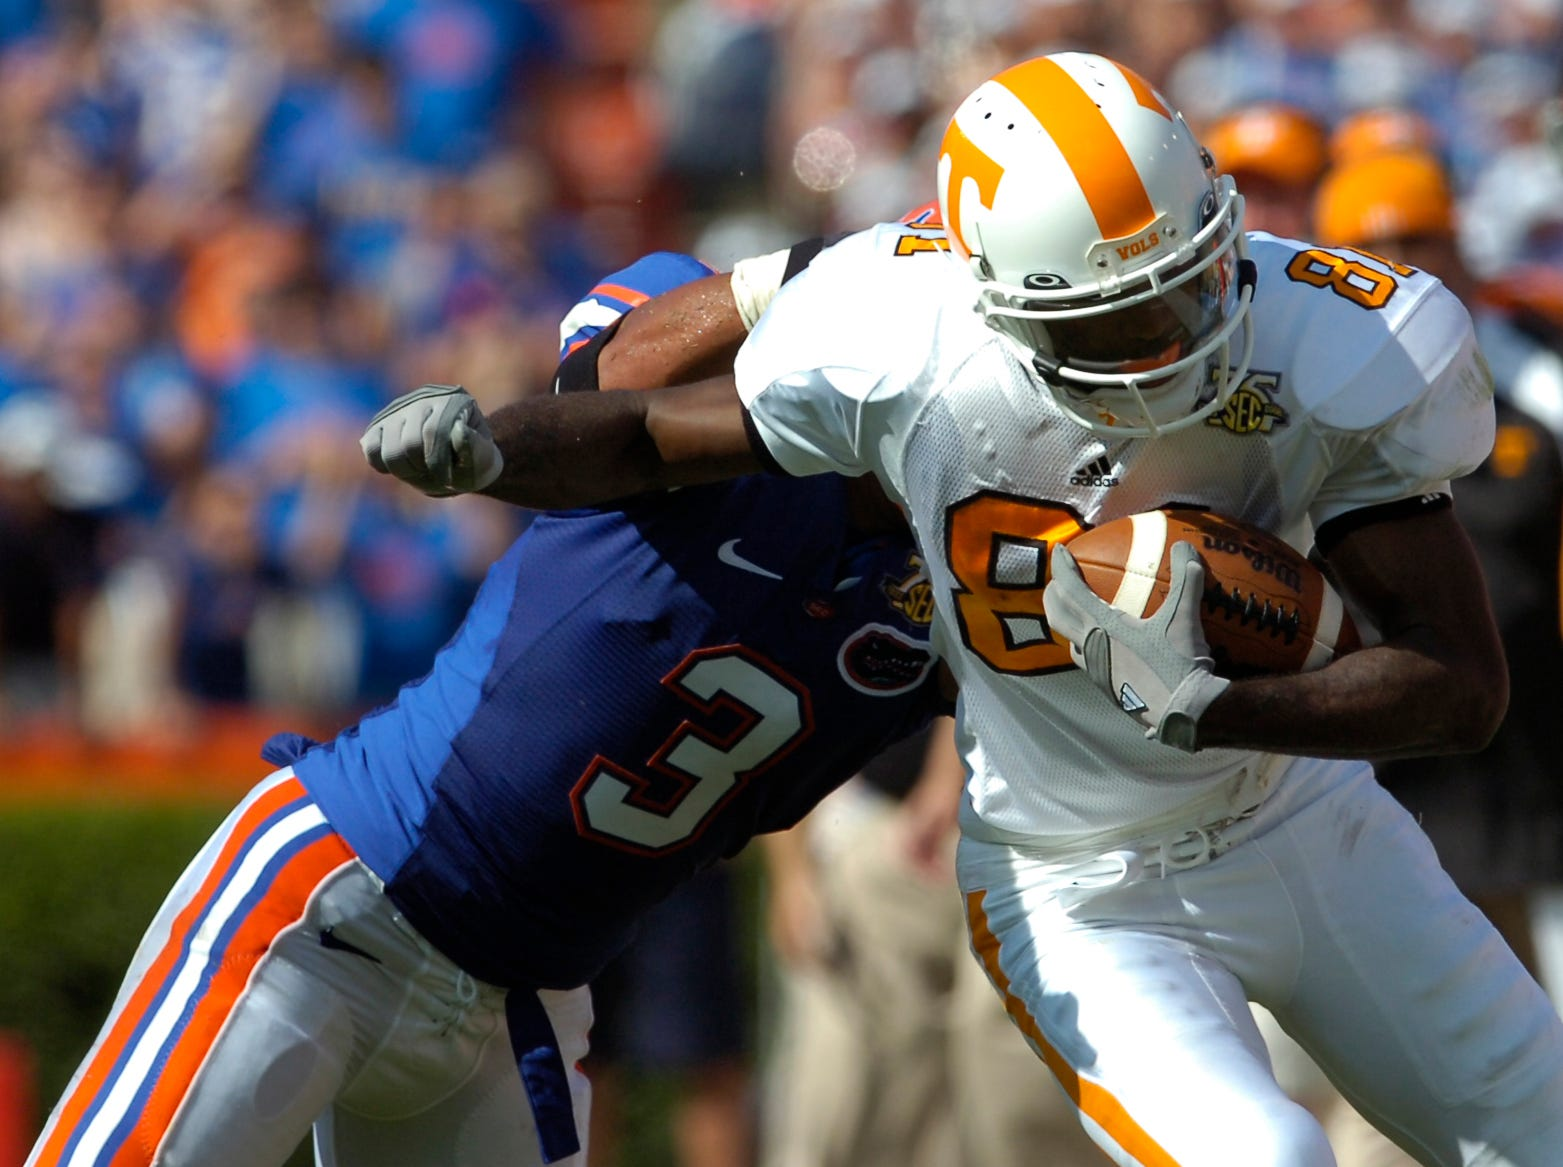 Tennessee wide receiver Josh Briscoe slips past Florida defensive back Kyle Jackson on Sept. 15, 2007 at Gainesville, Fla.